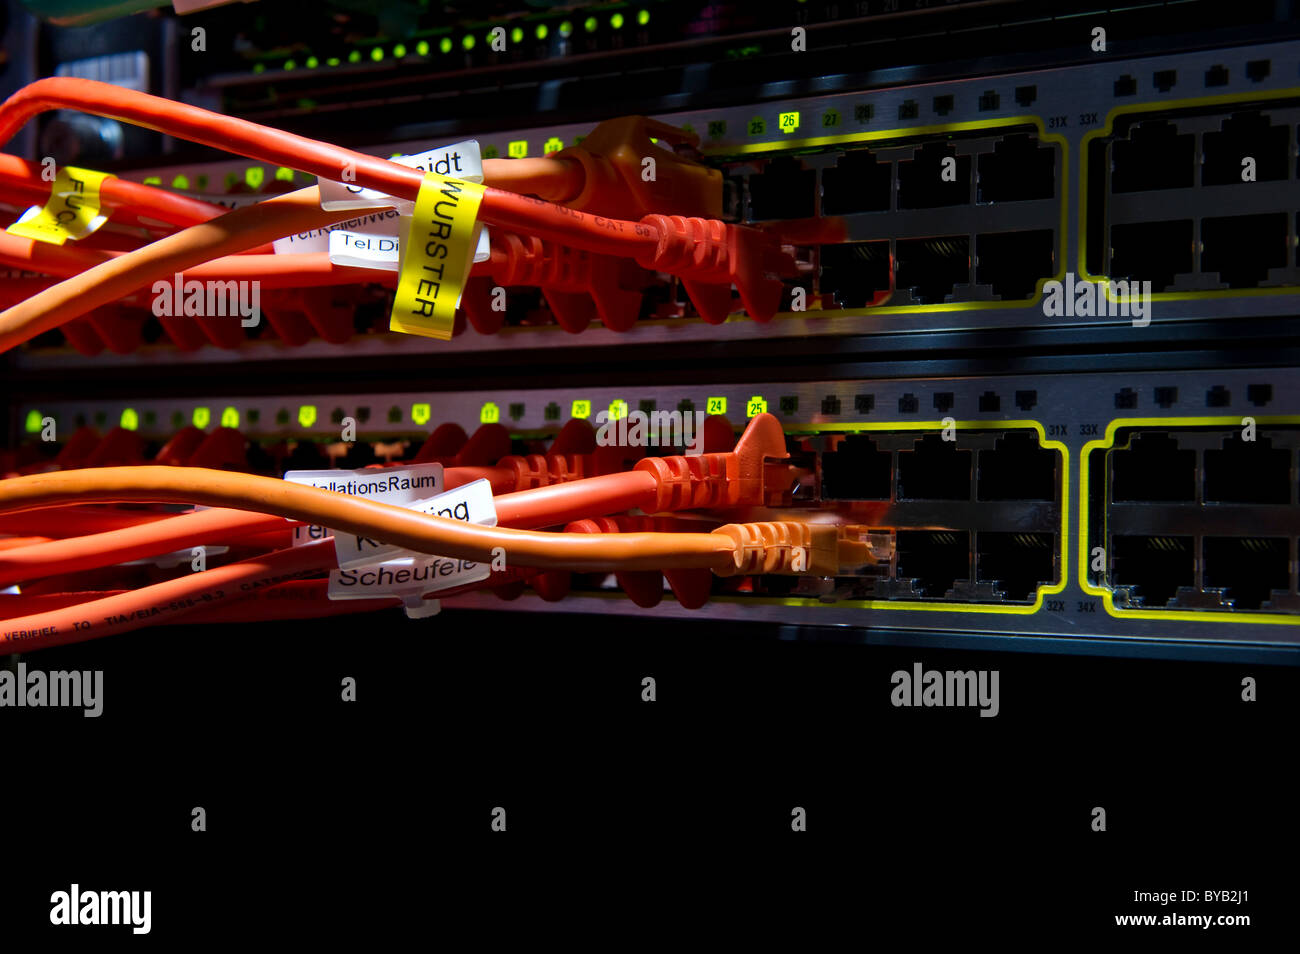 Cabling and jacks on an internet server - Stock Image